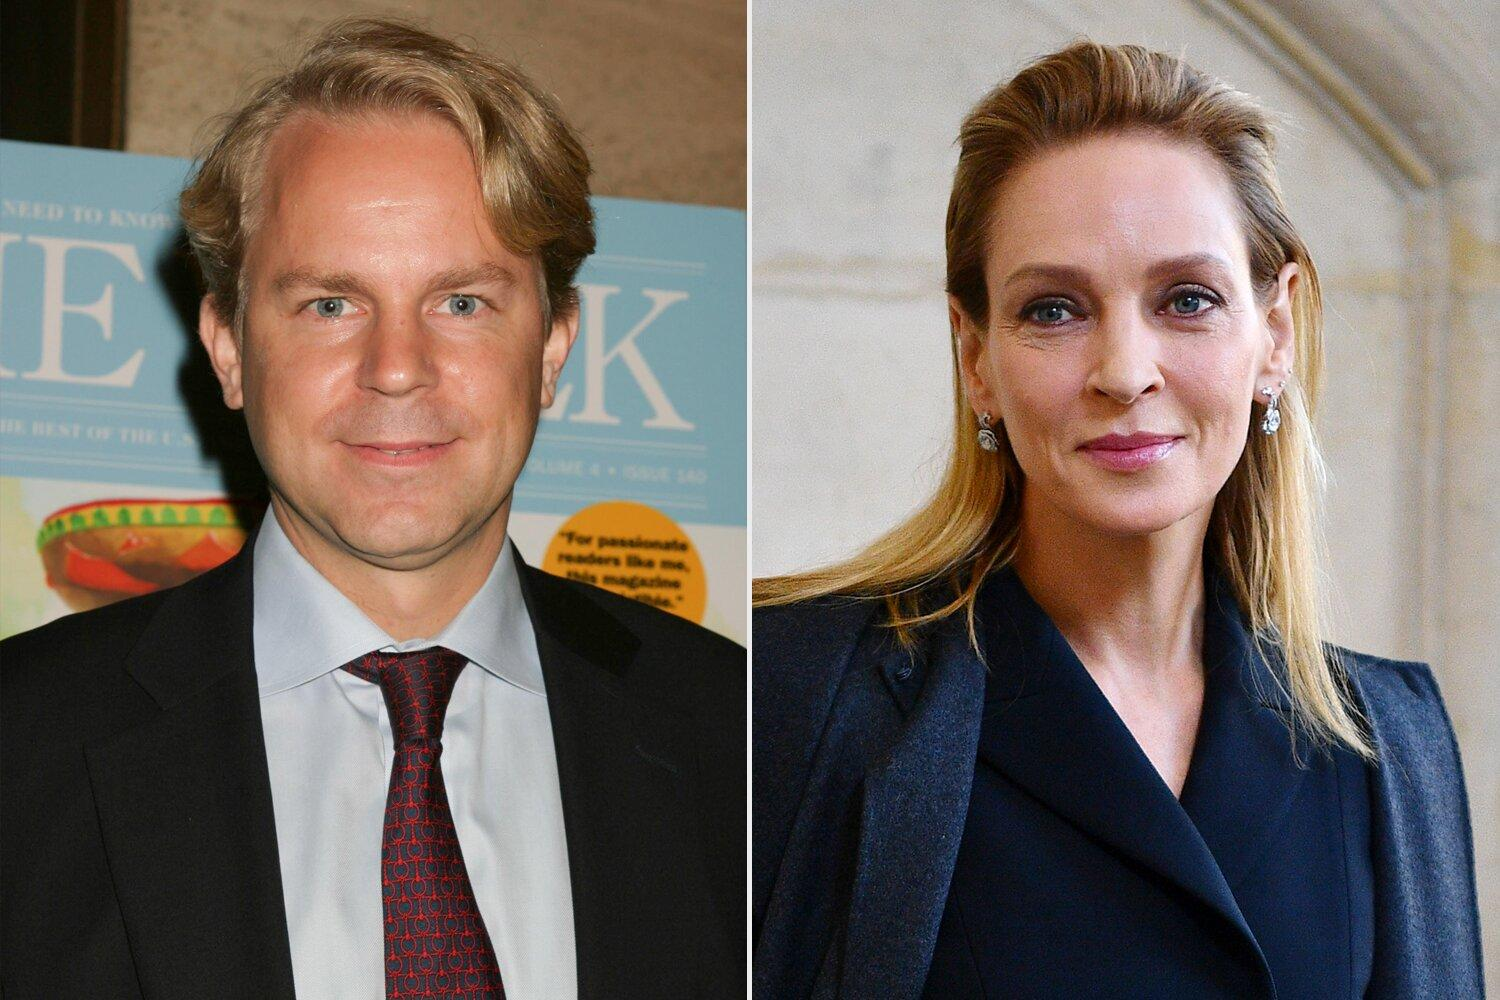 Uma Thurman Is Reportedly Dating Bloomberg Media CEO Justin B. Smith: 'I'm a News Lover'